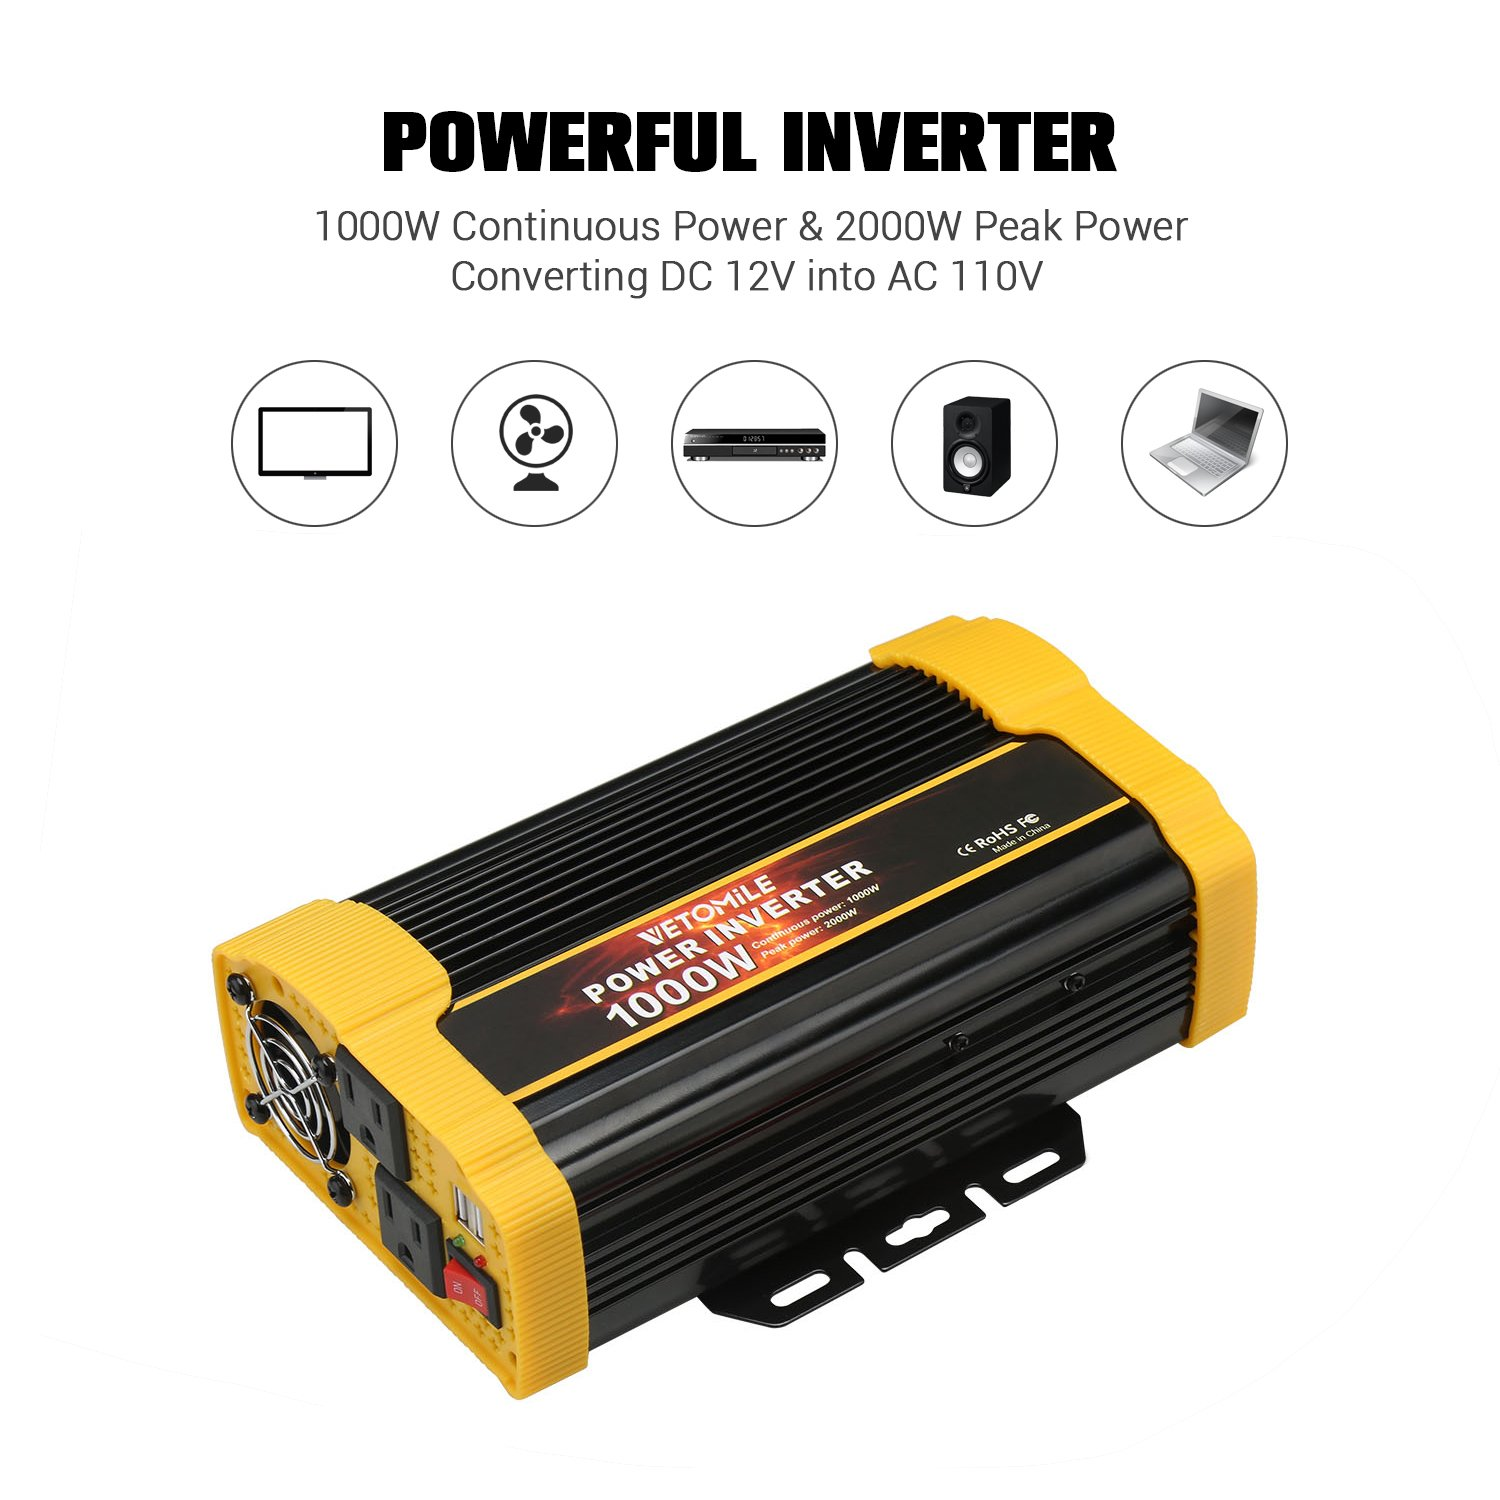 Vetomile 1000w Power Inverter Dc 12v To 110v Ac Car With 21a Dual Usb Adapter In 01 Inverters Automotive Tibs